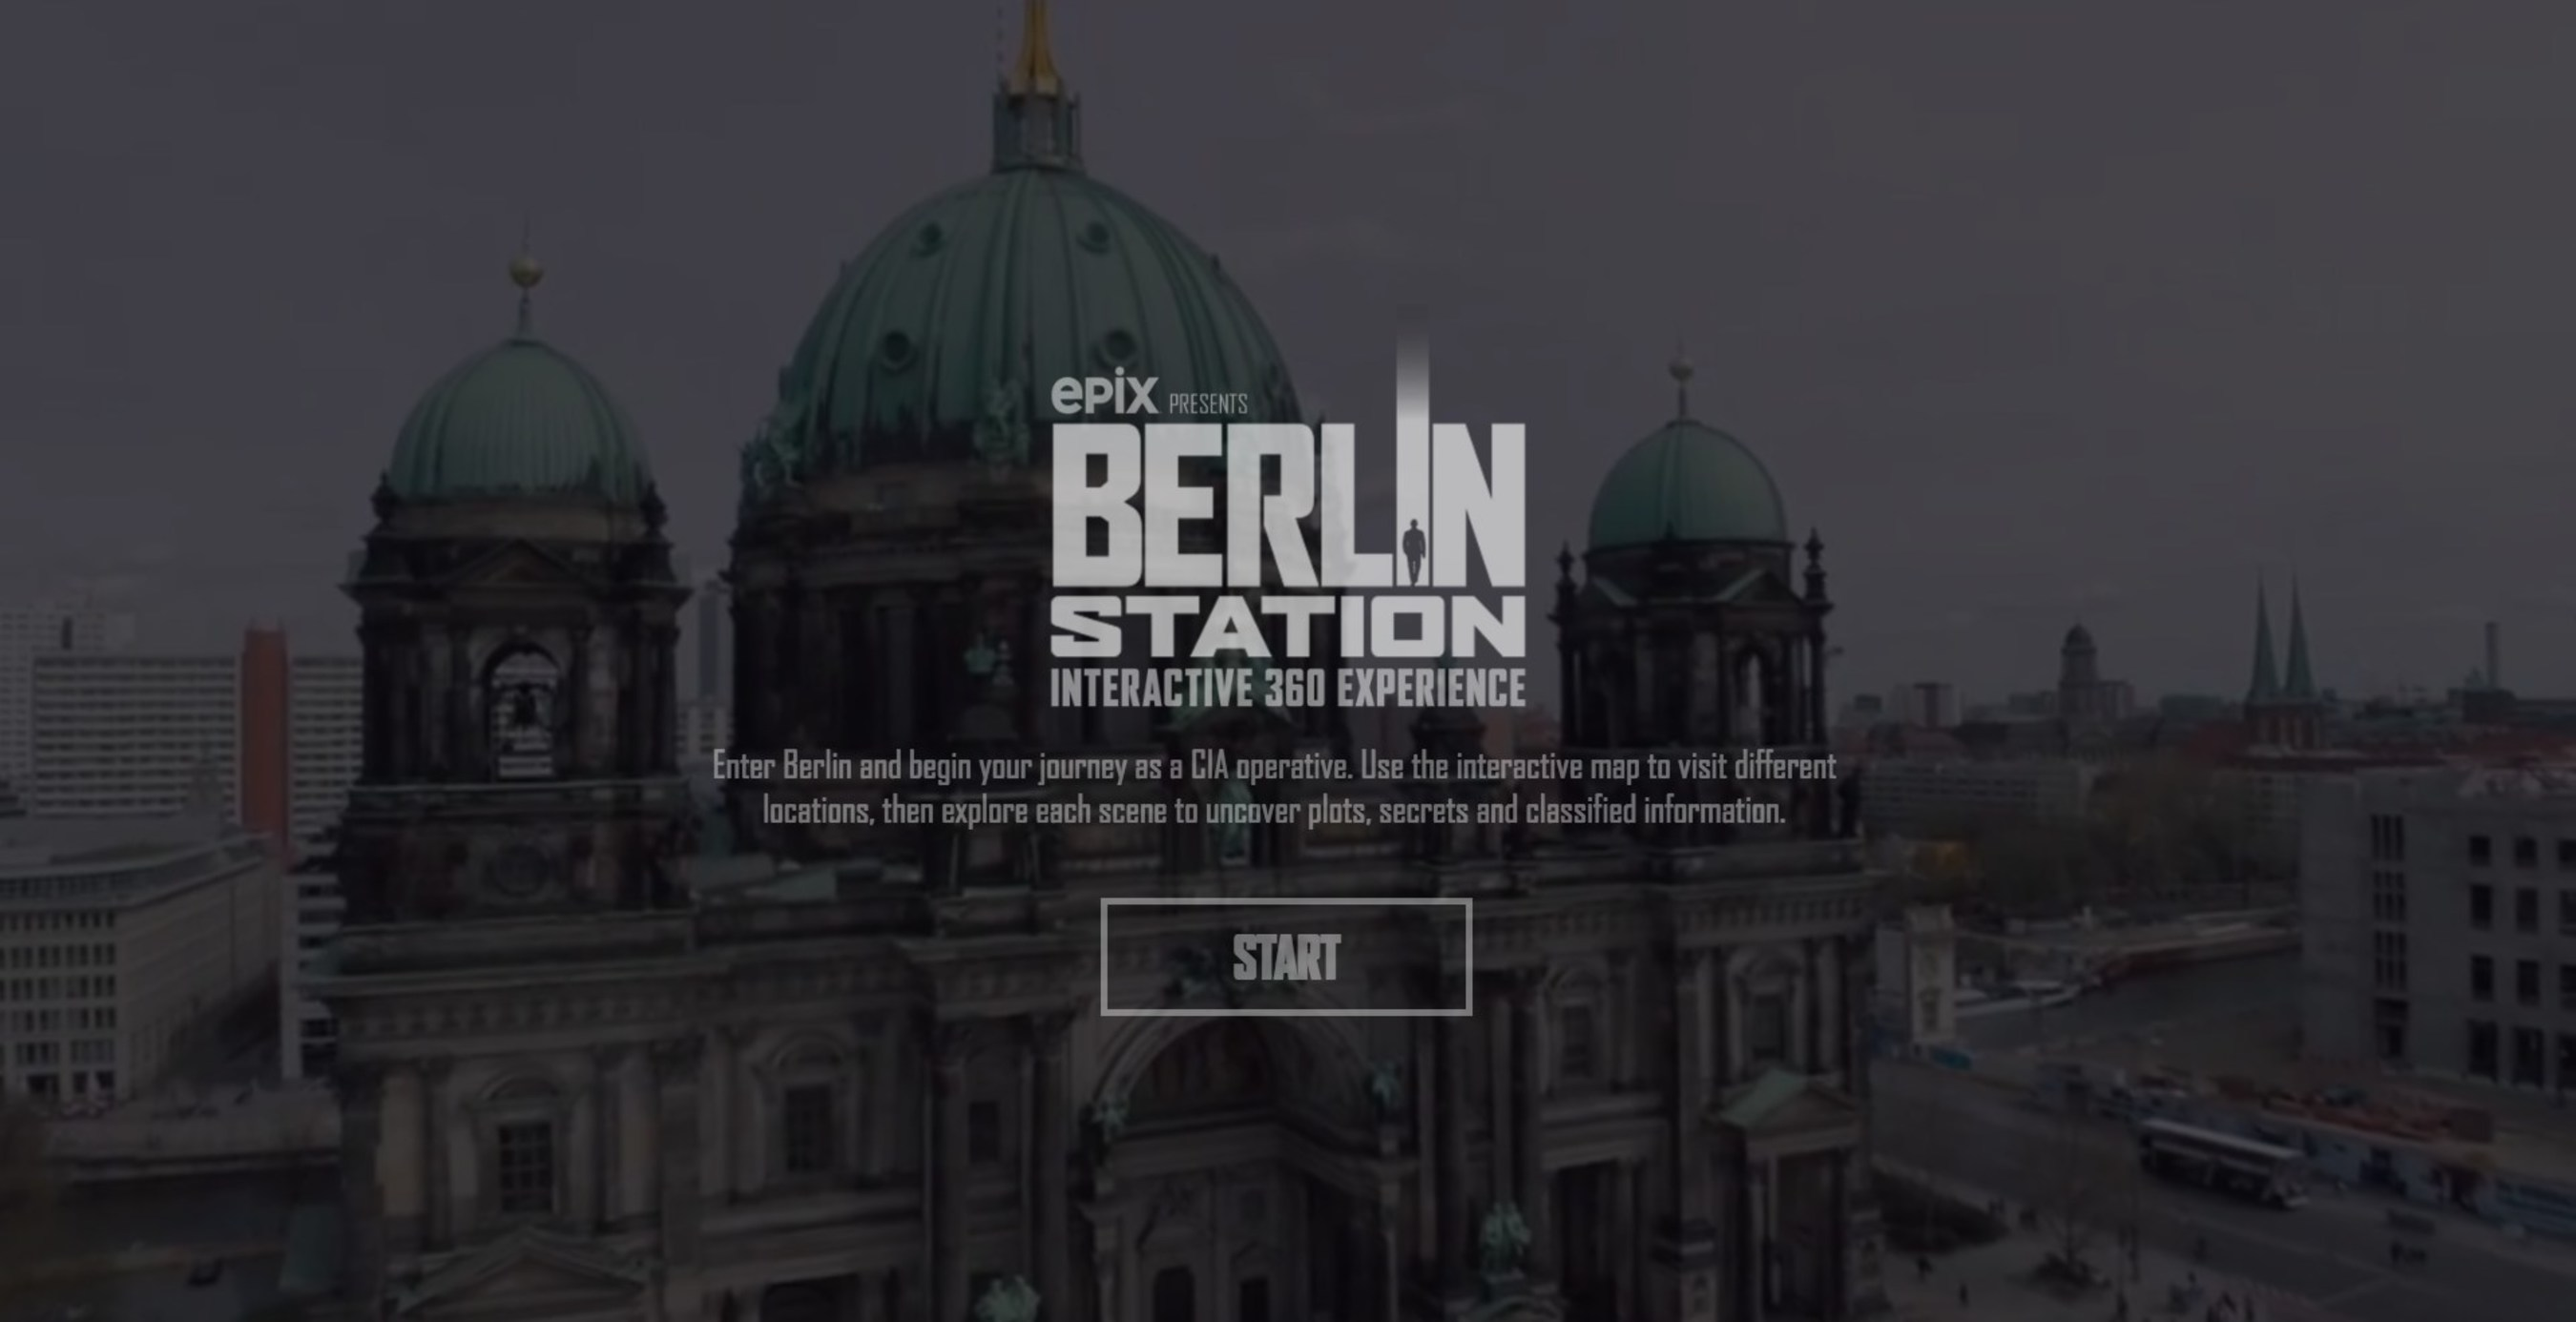 Ayzenberg Teams Up With WIREWAX to Deliver the First-Ever 360-Degree, Interactive Video Experience for EPIX's New Original Series, 'Berlin Station'